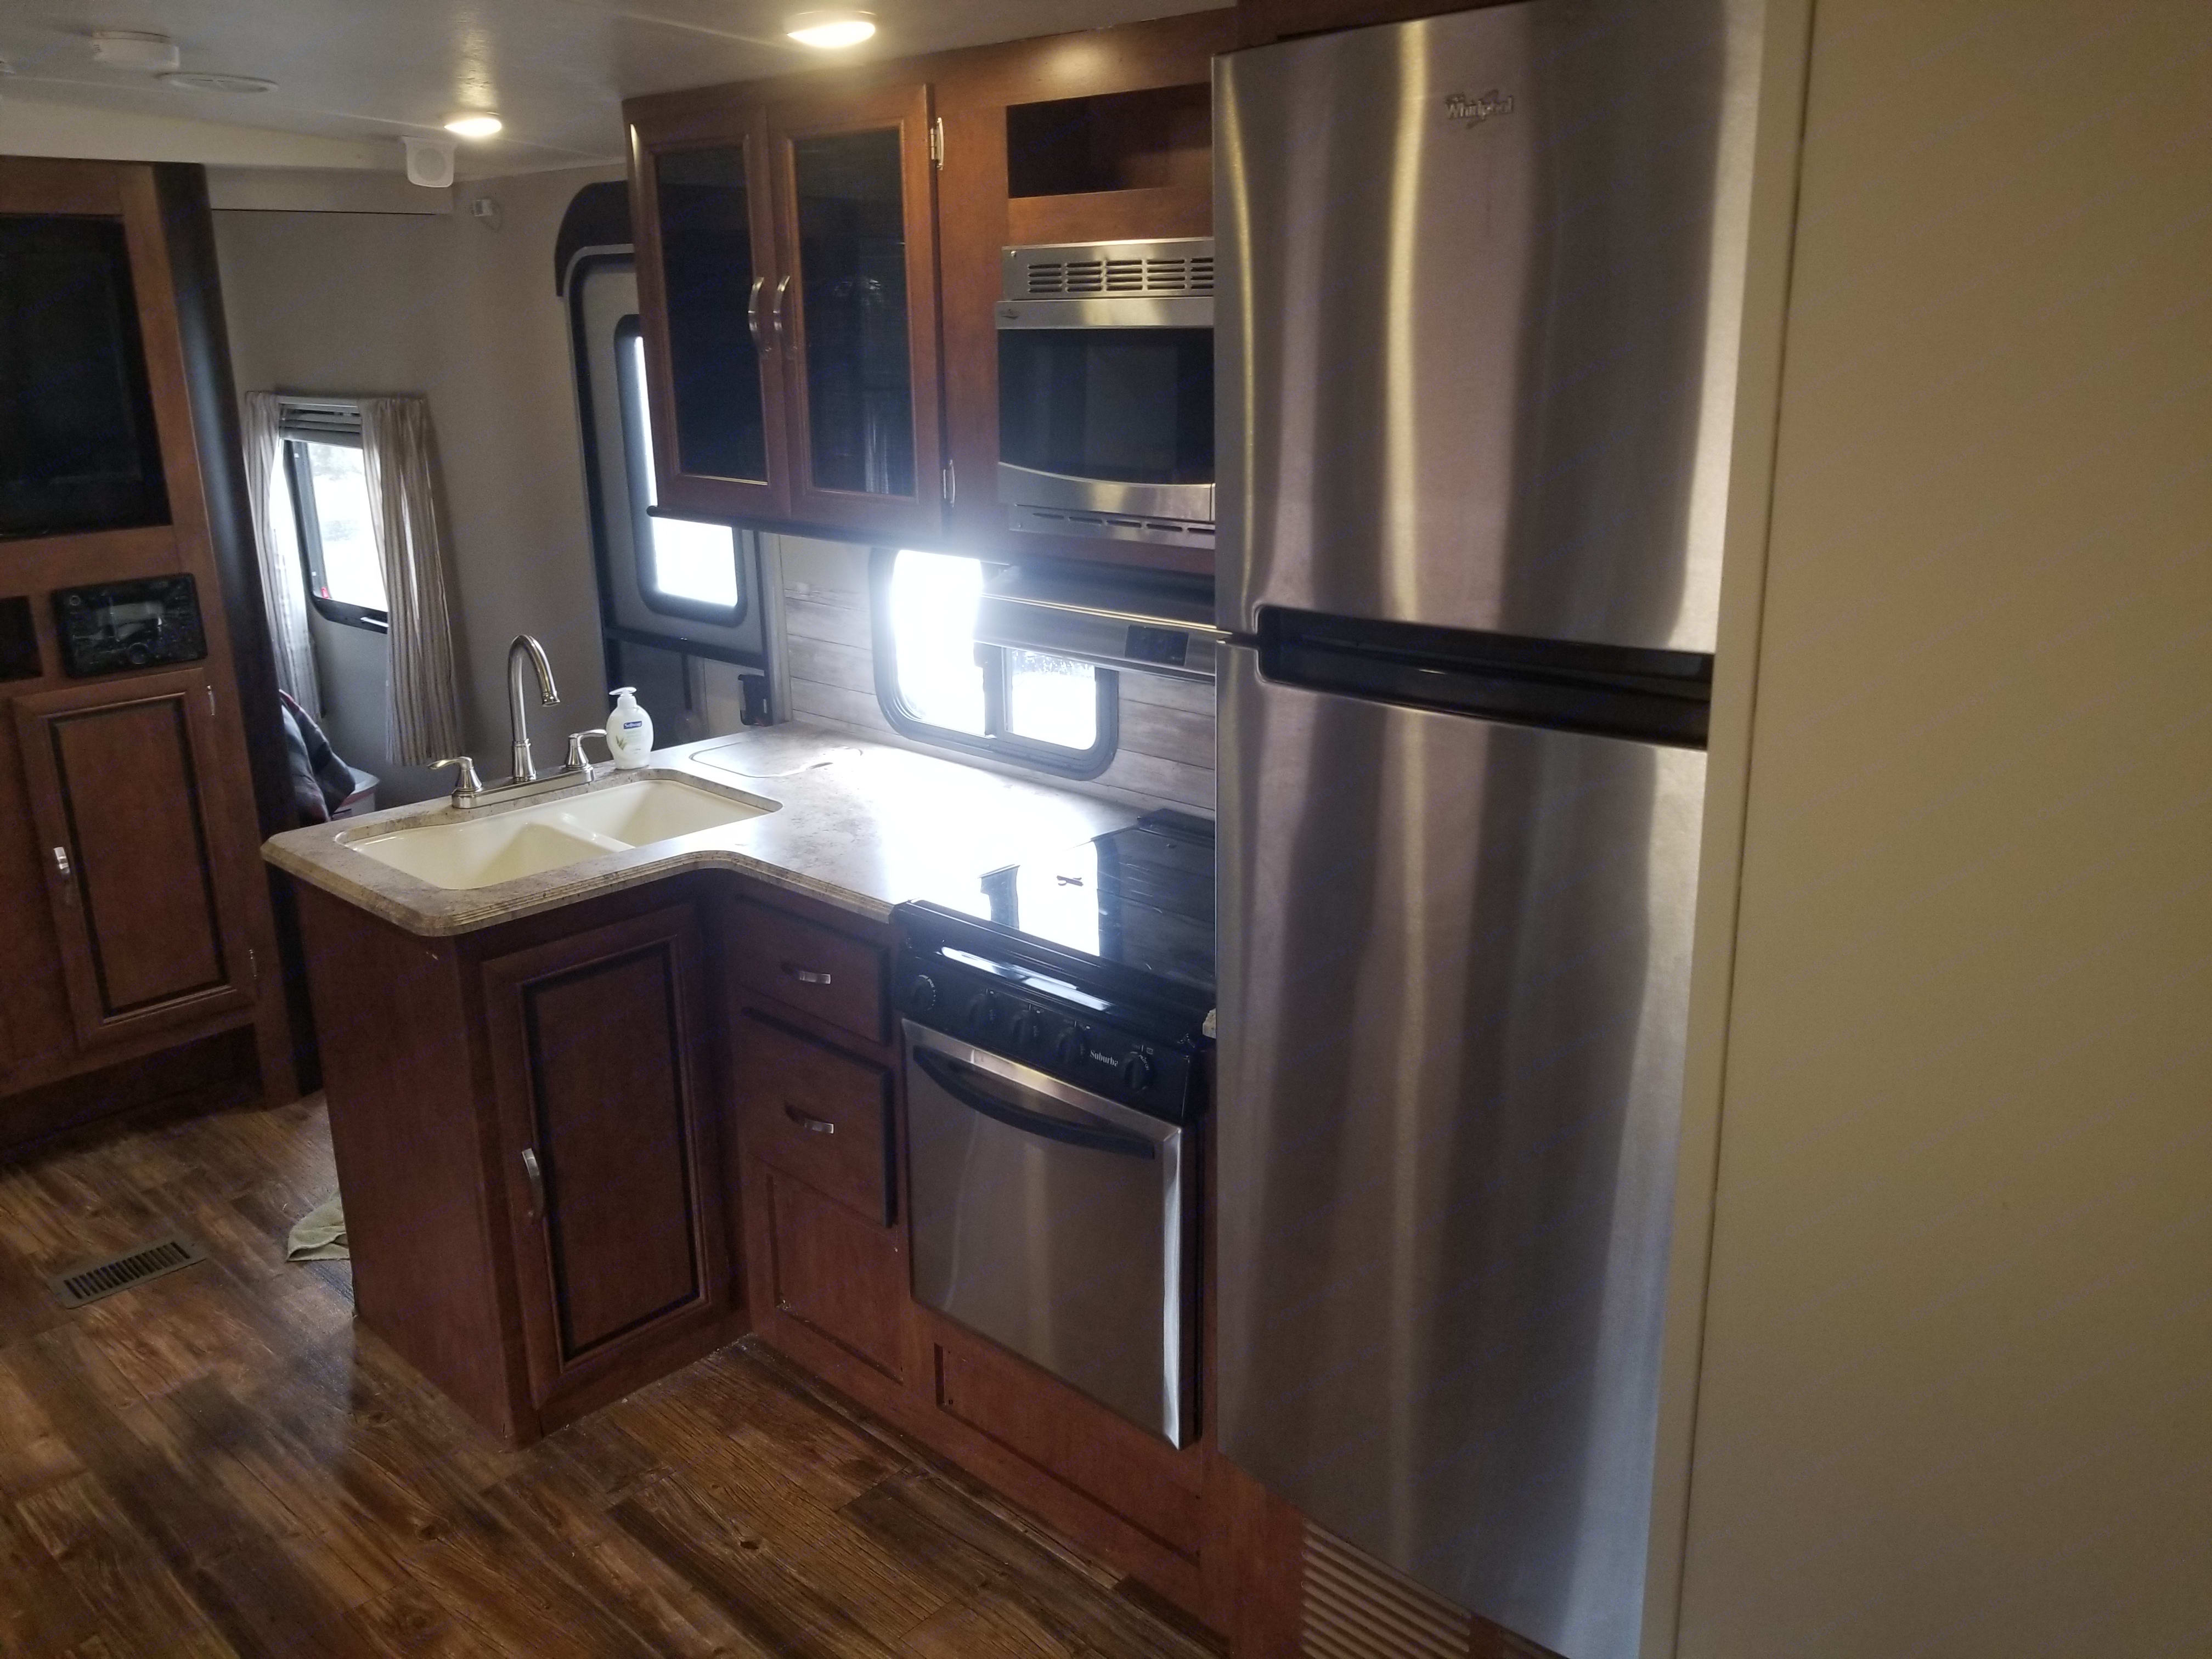 Residential fridge with plenty of room, three burner stovetop with oven and microwave.  . Forest River Vibe 2017